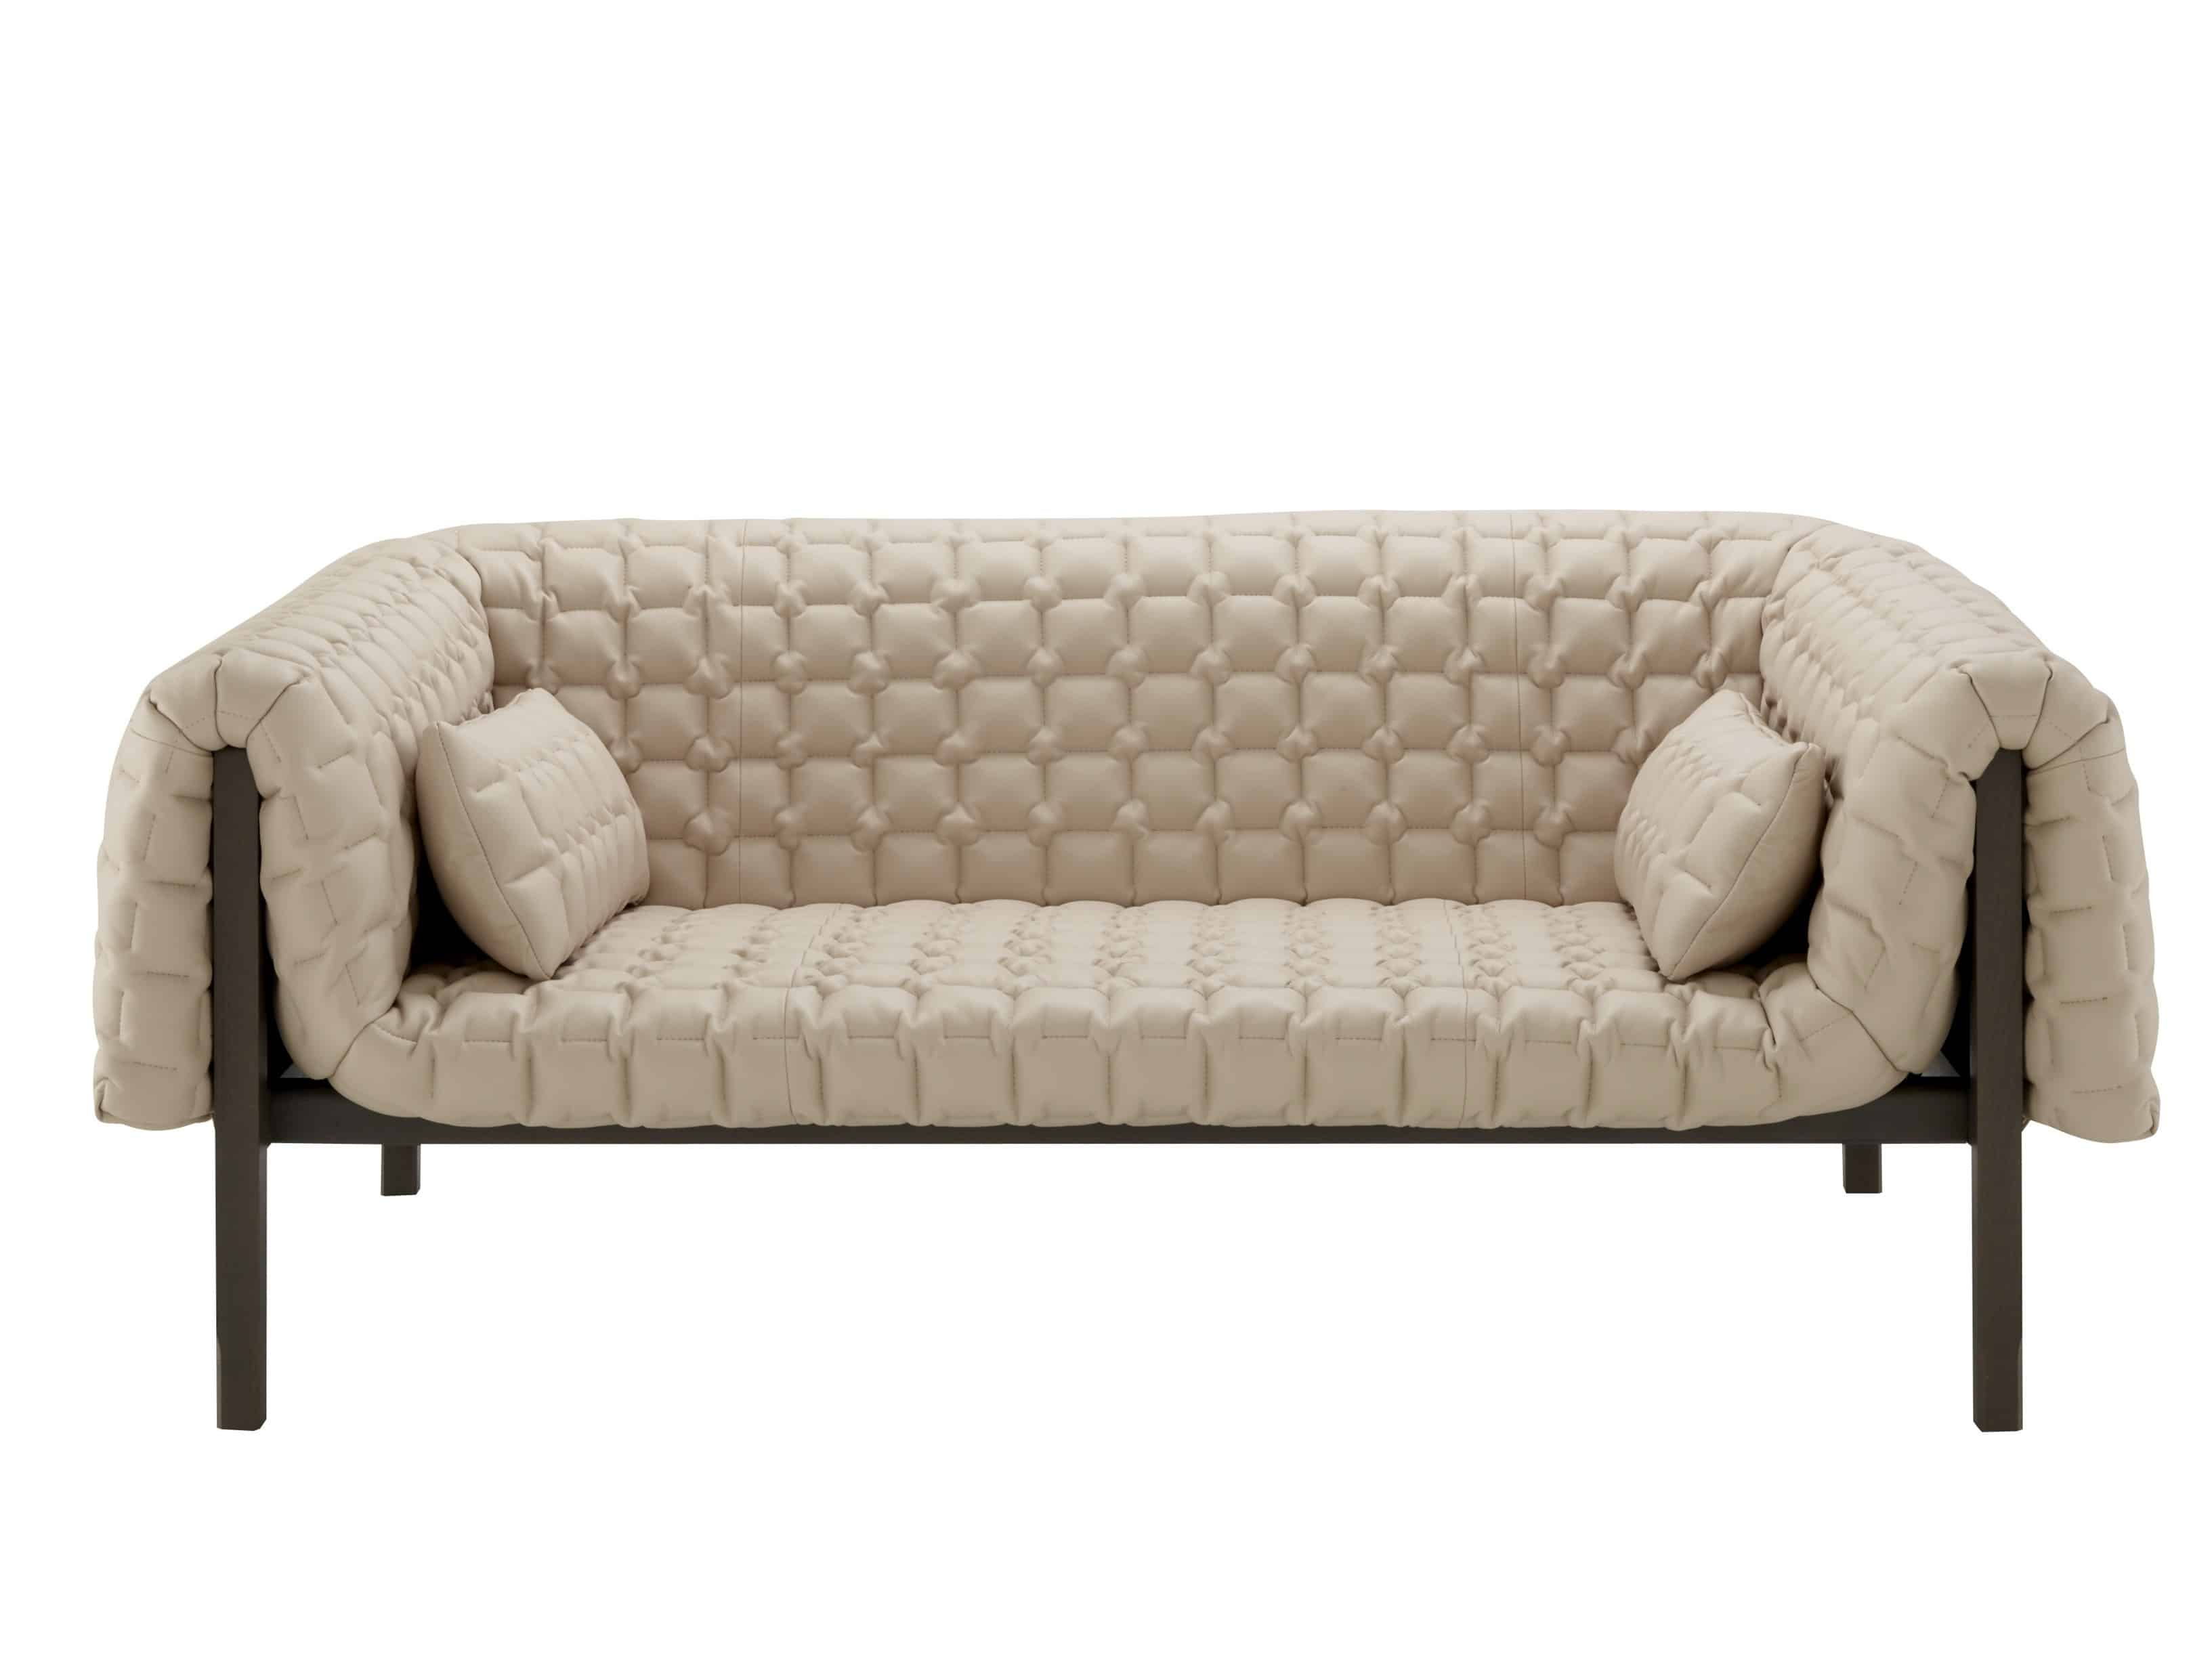 Cool Coole Sofas Galerie Von From The Ruche Collection, A Thoroughly Leather